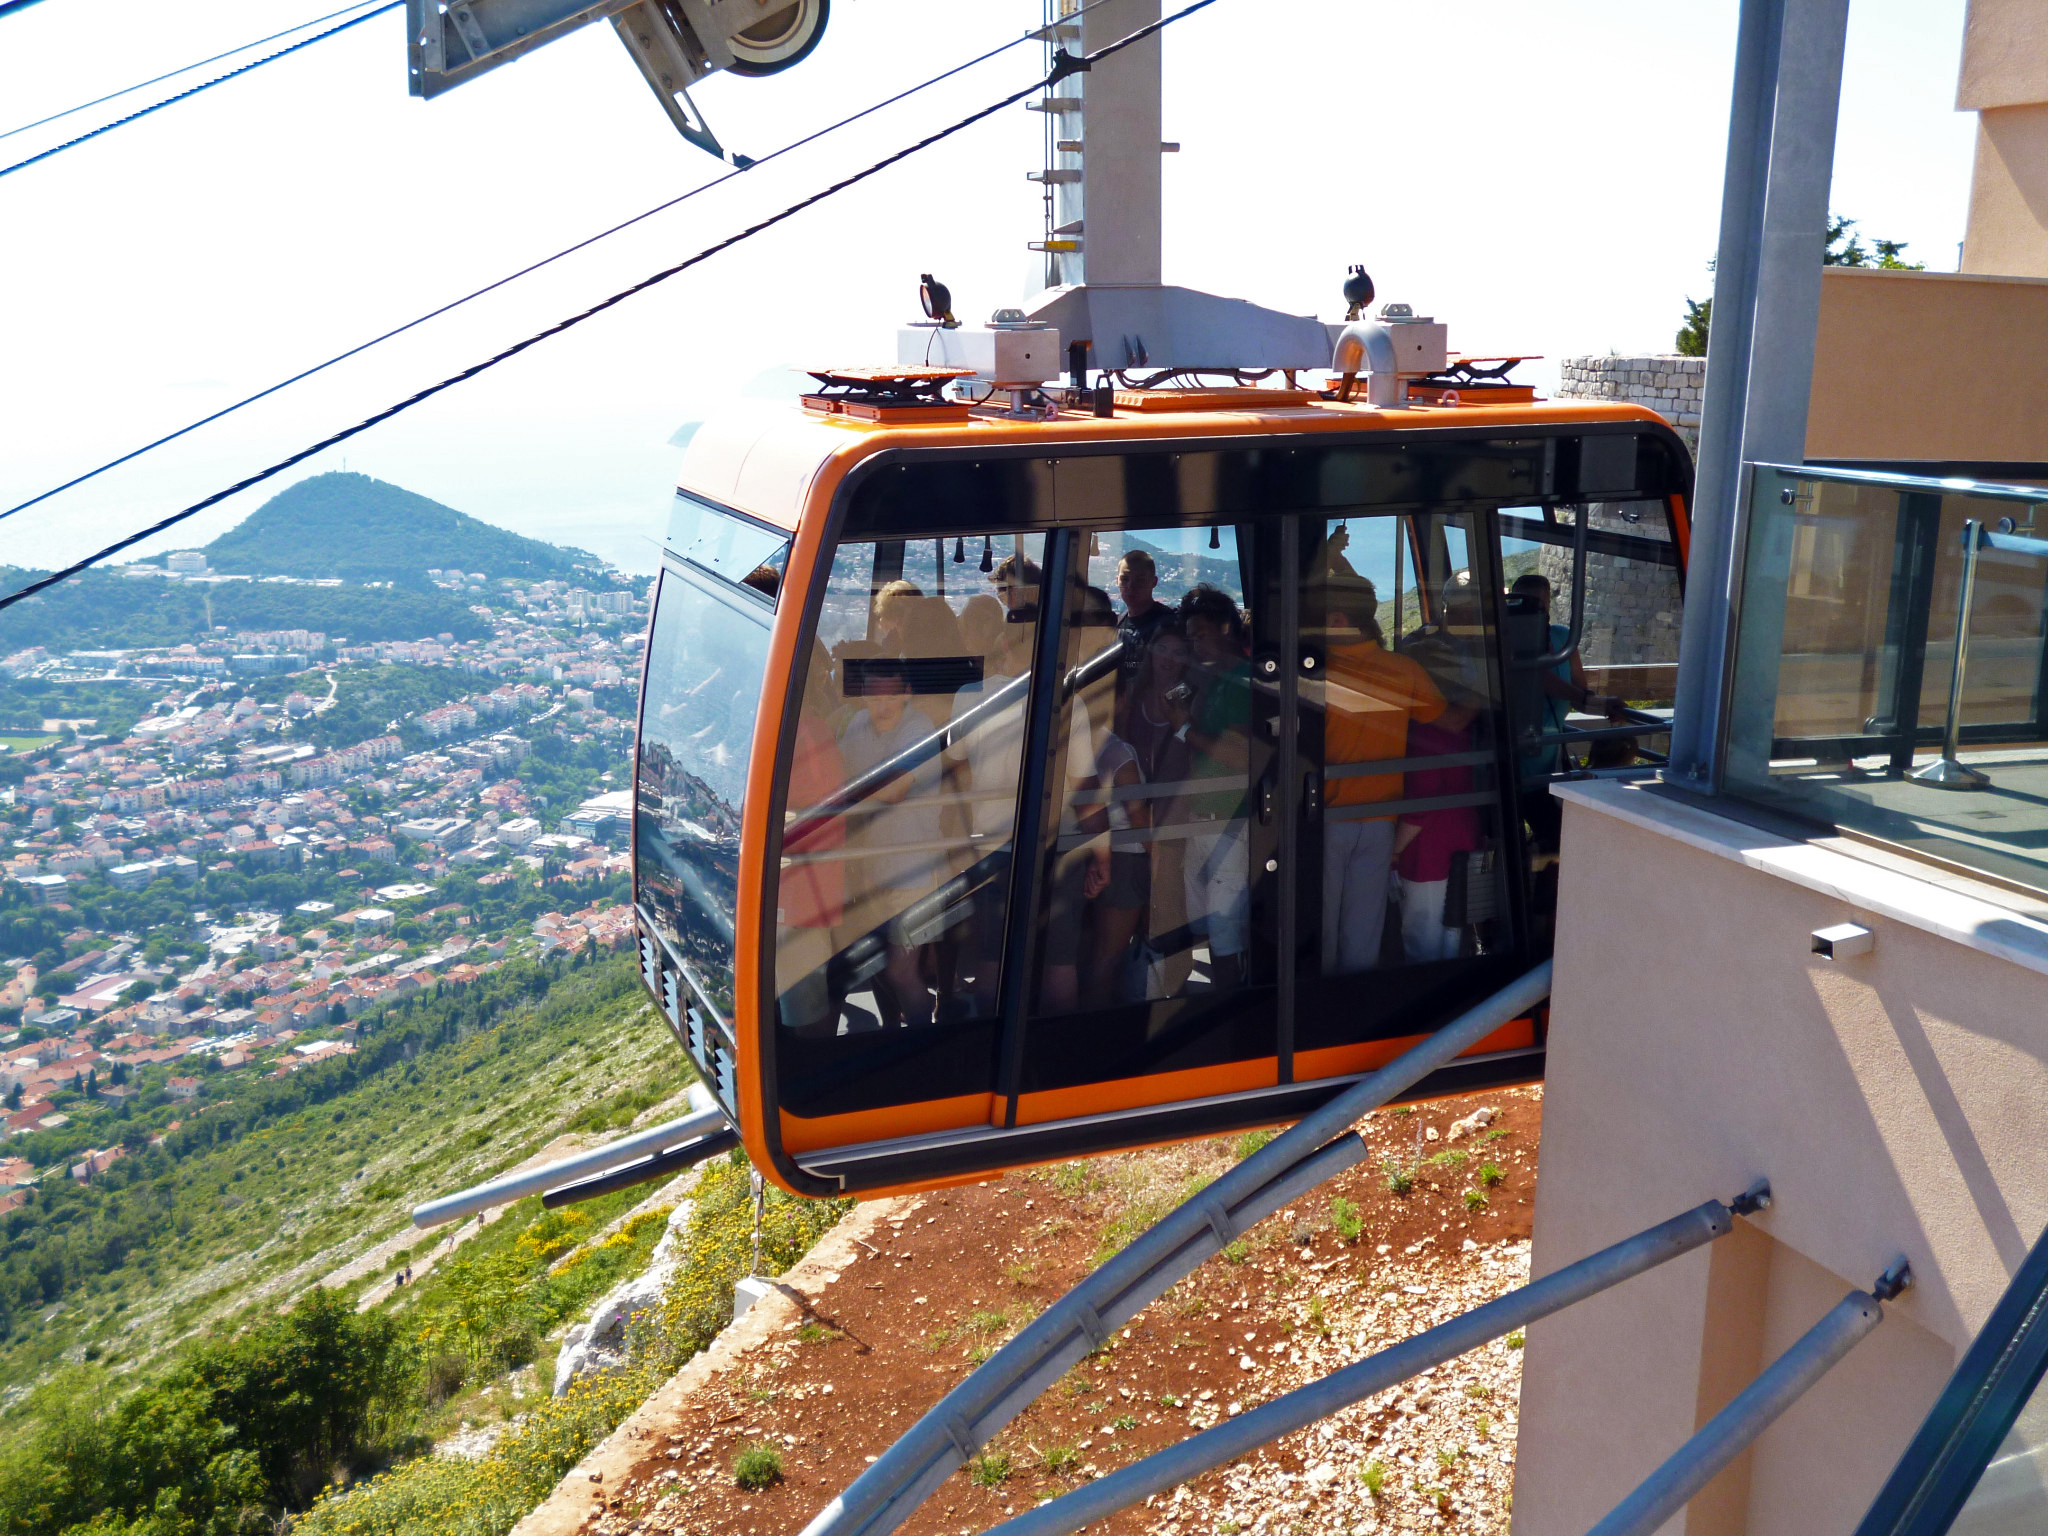 image of cable car